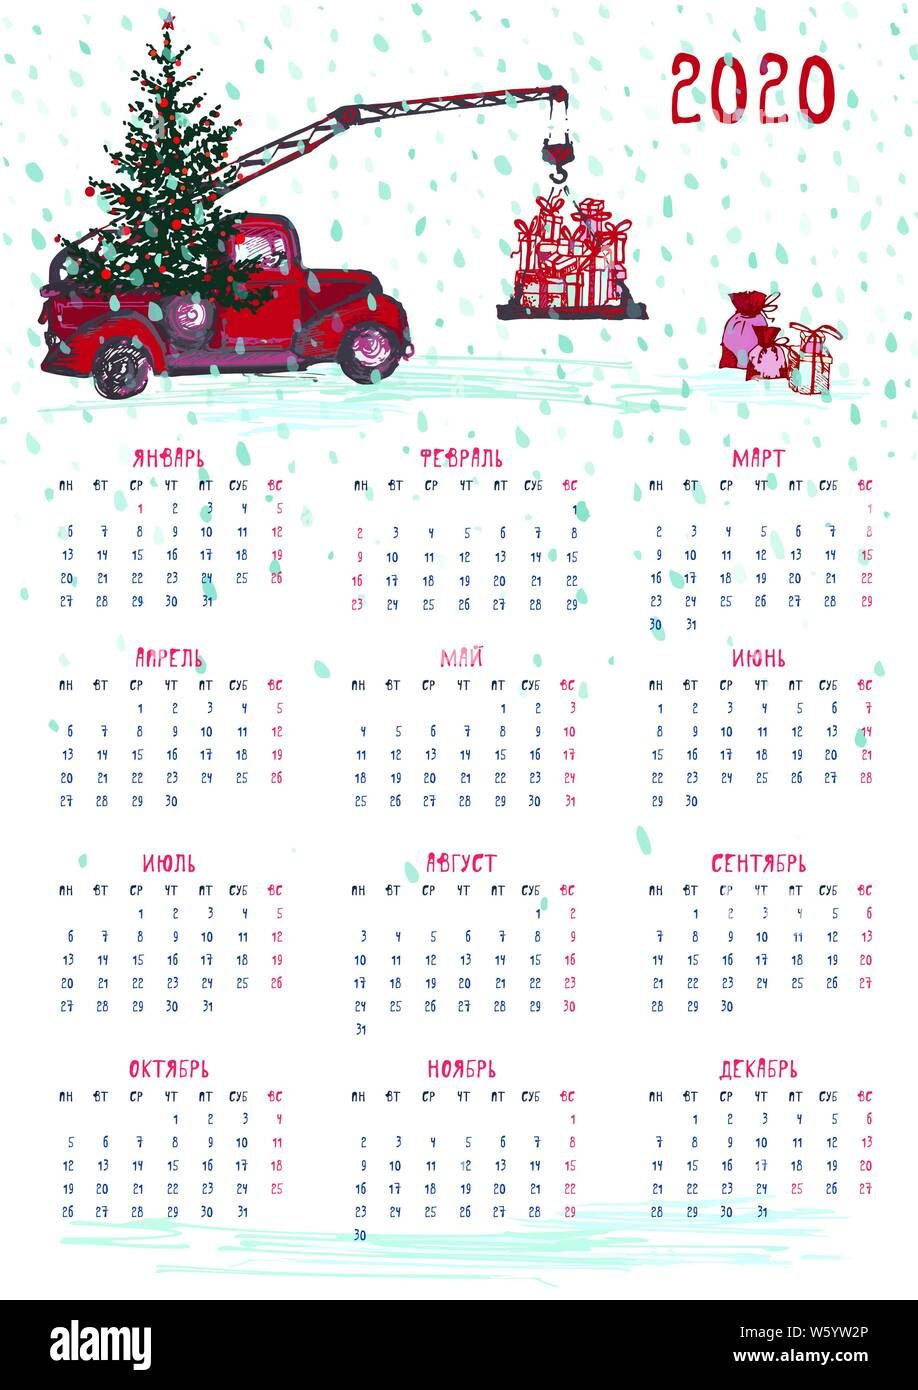 Russian Christmas Calendar 2020 2020 Calendar planner whith red christmas tractor, new year tree